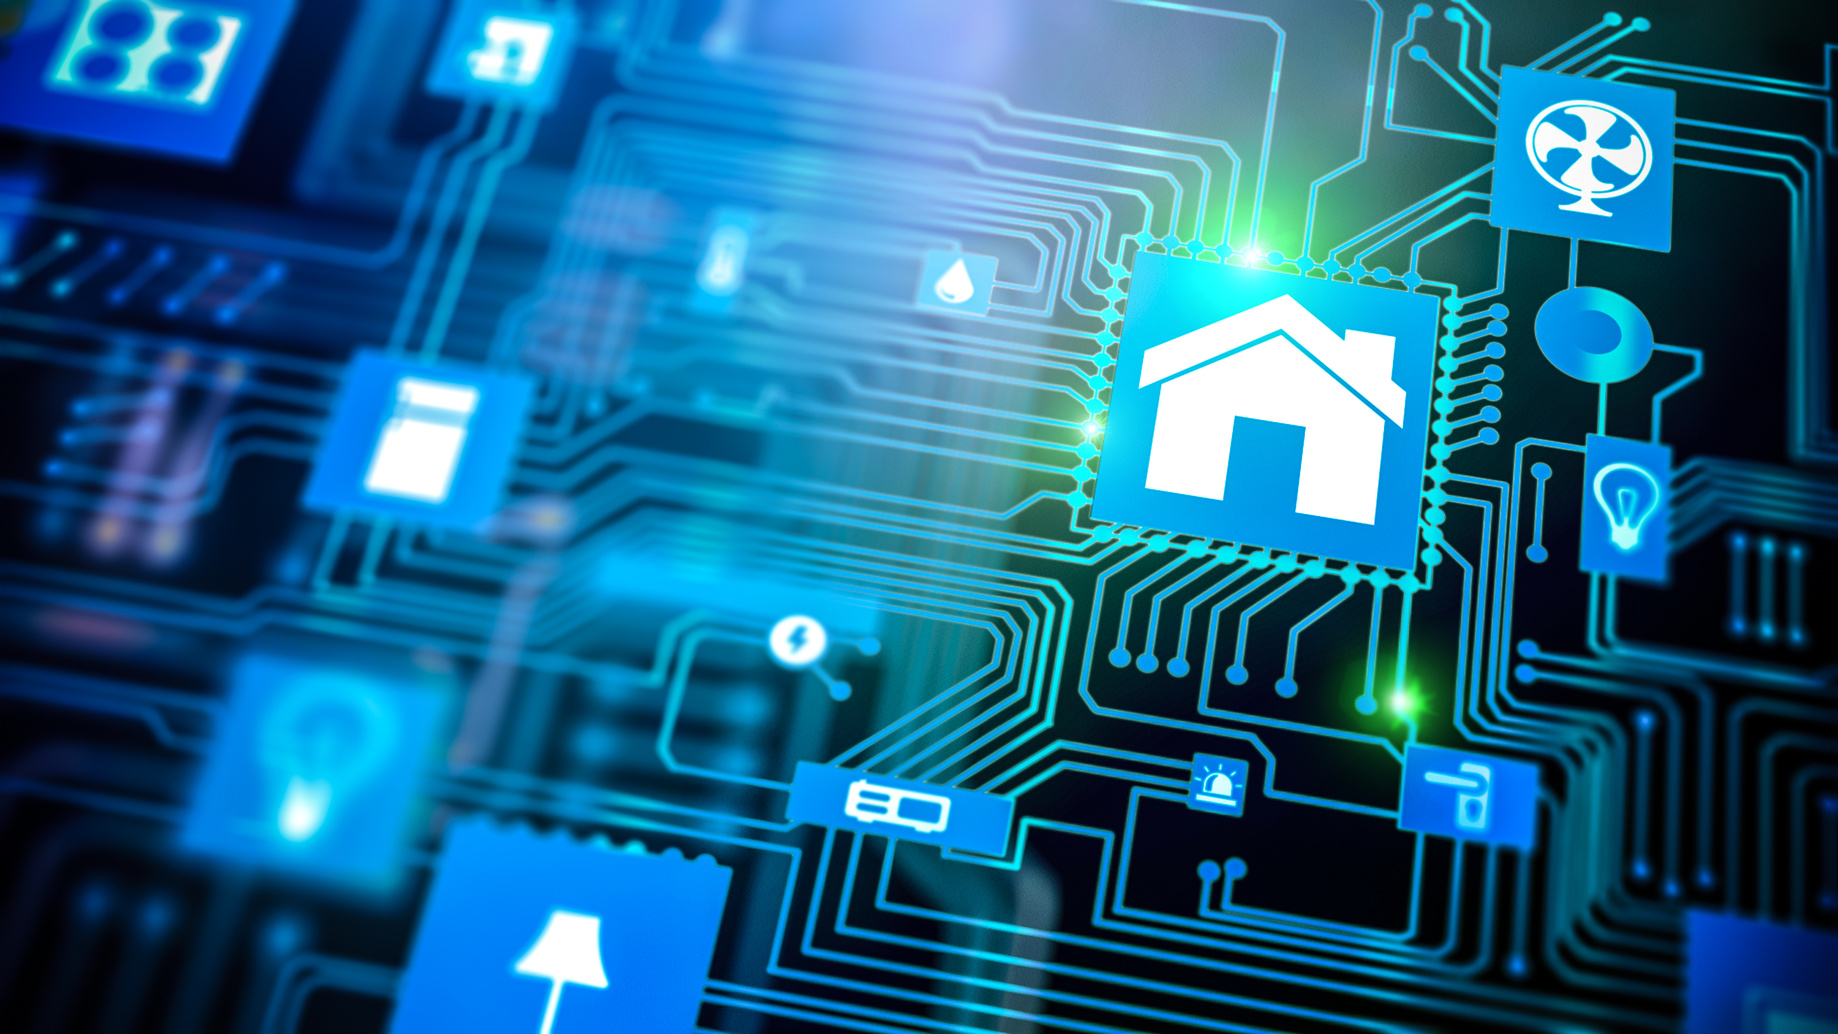 Advice To Insurers Entering The Smart Home Market Build Trust Electronic Circuits Blog Partner Invest